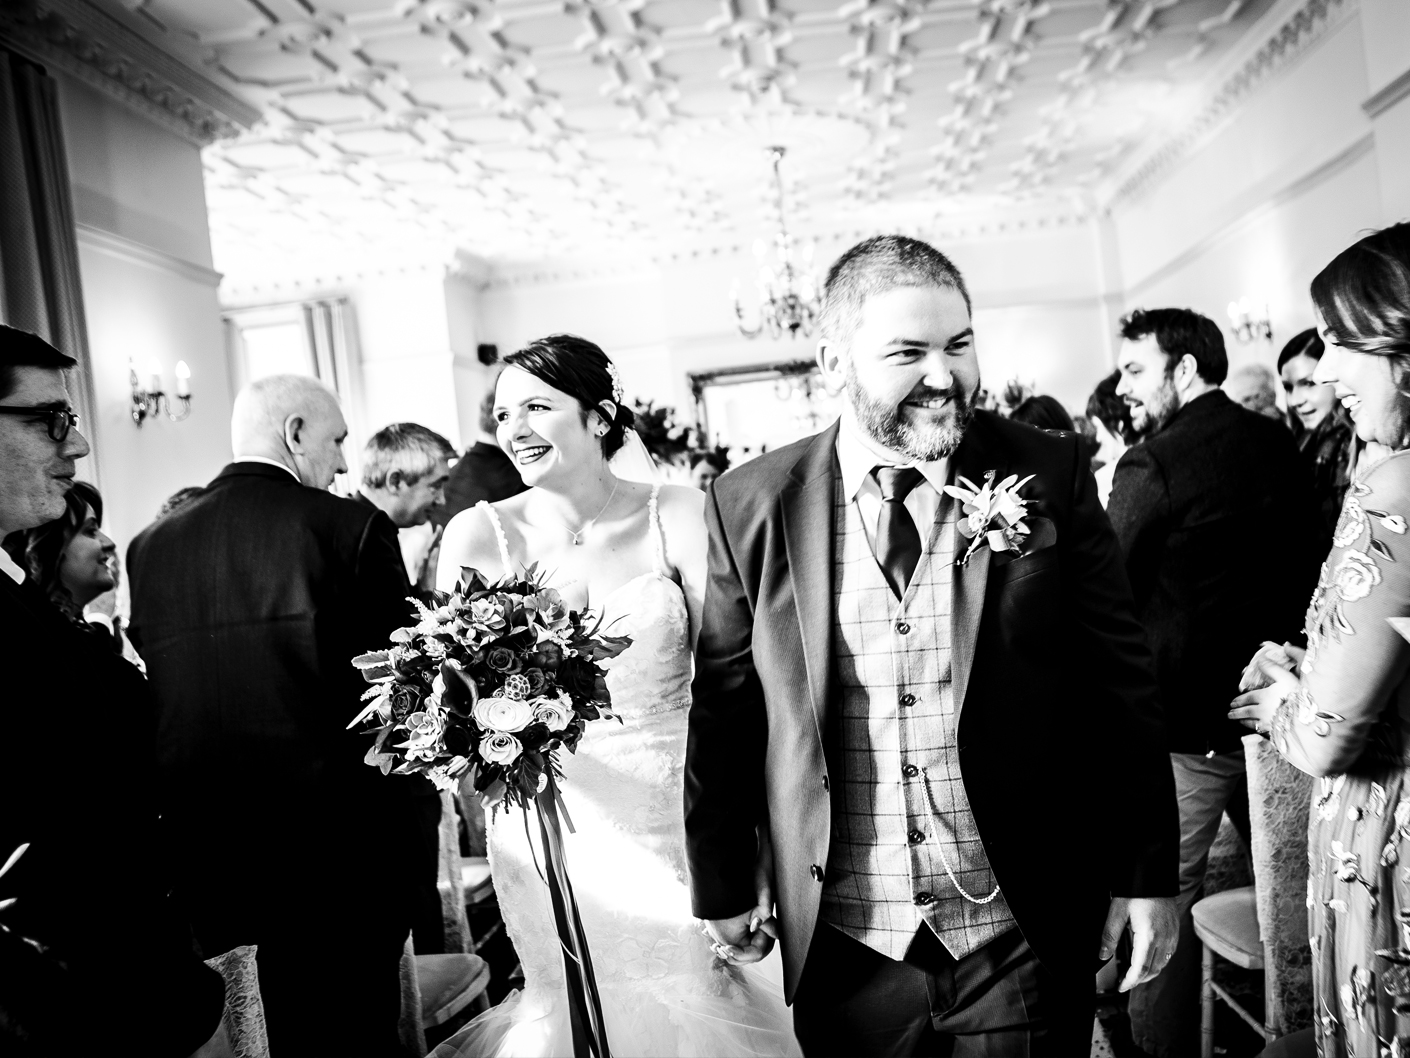 wedding-photography-at-the-wedding-ceremony-nunsmere-hall-cheshire